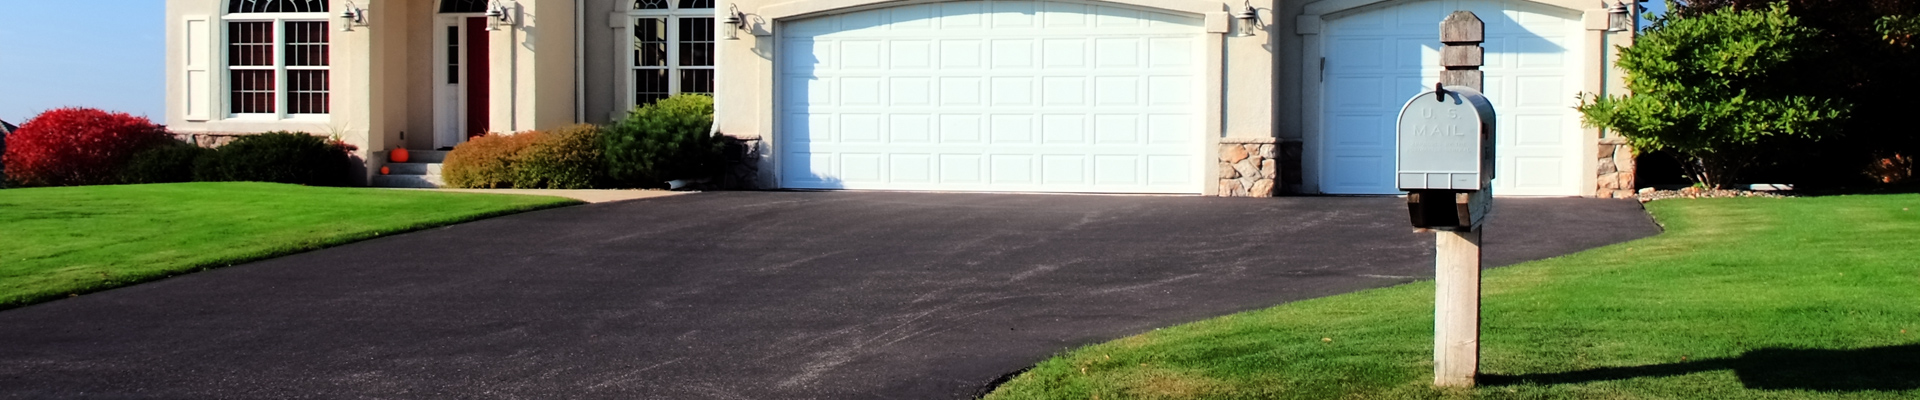 residential-paved-driveway